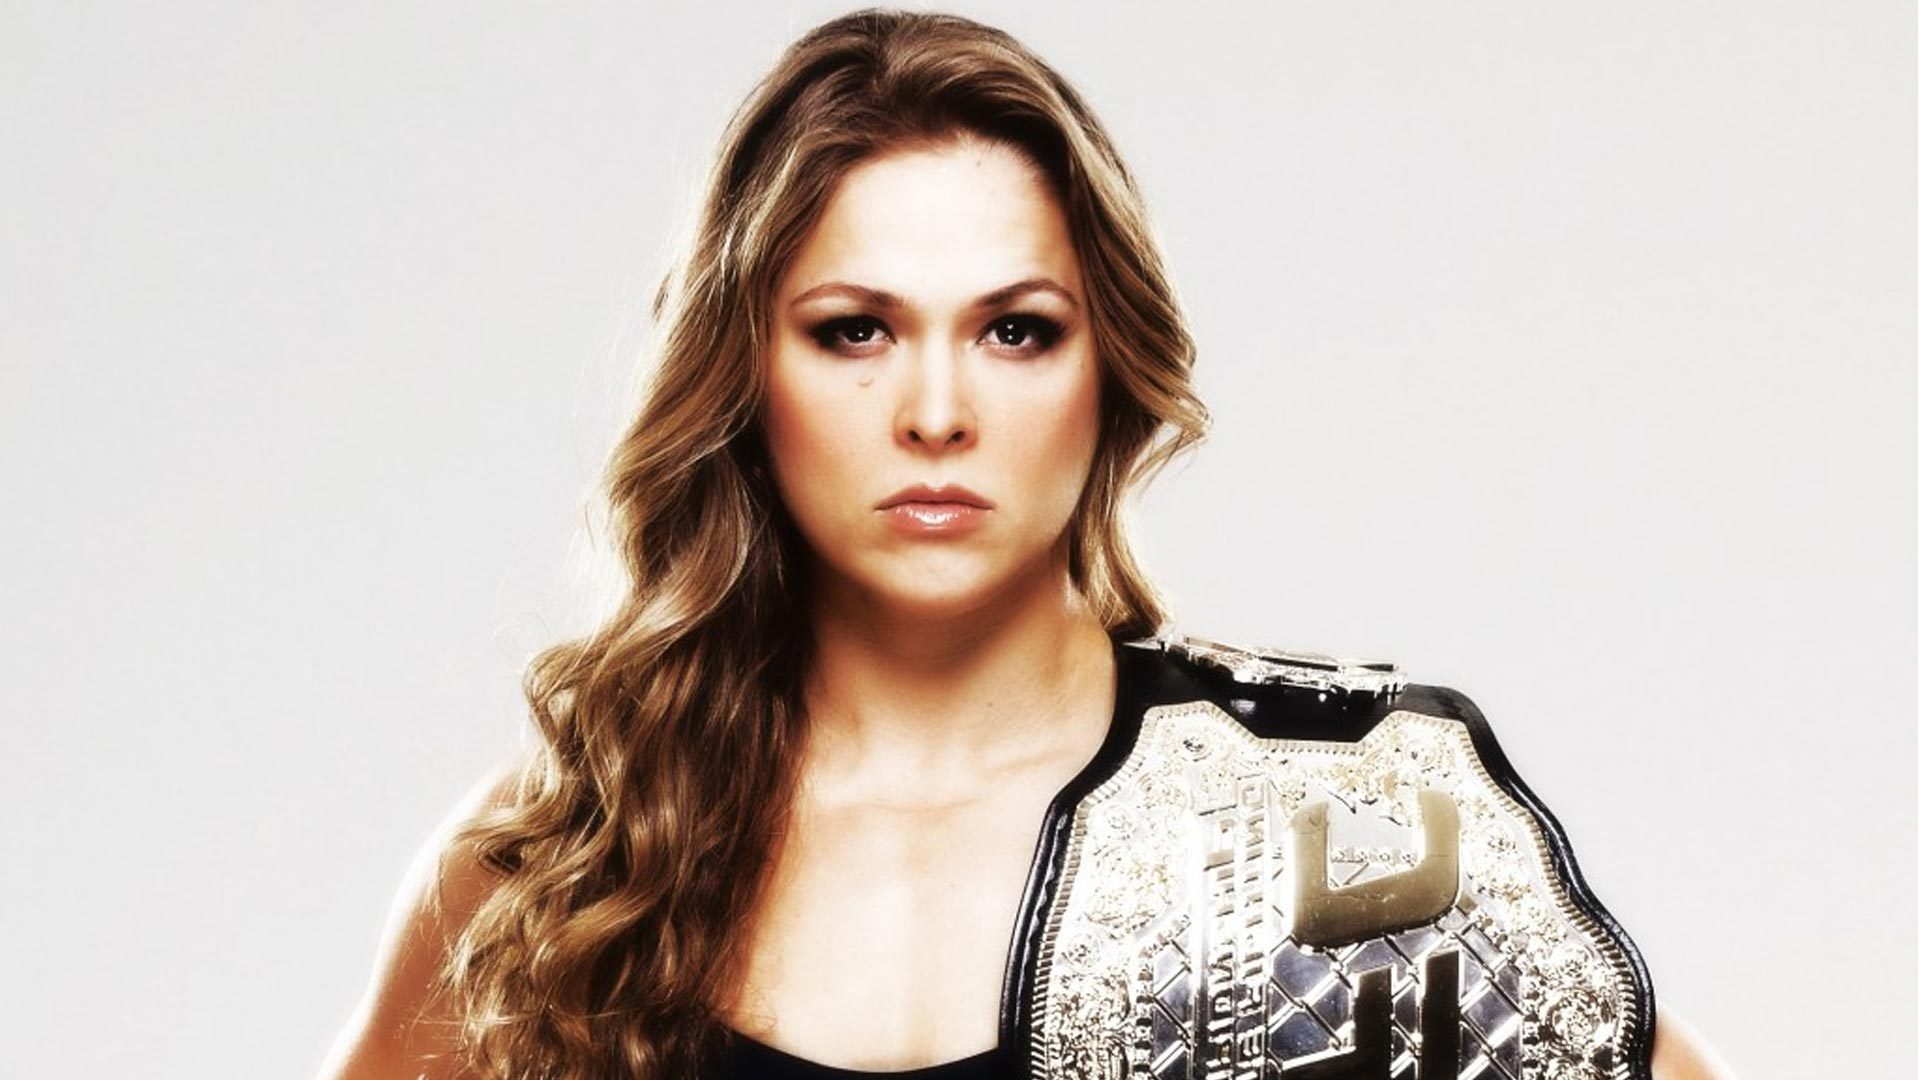 Ronda rousey wallpapers high resolution and quality download - Ronda rousey wallpaper ...